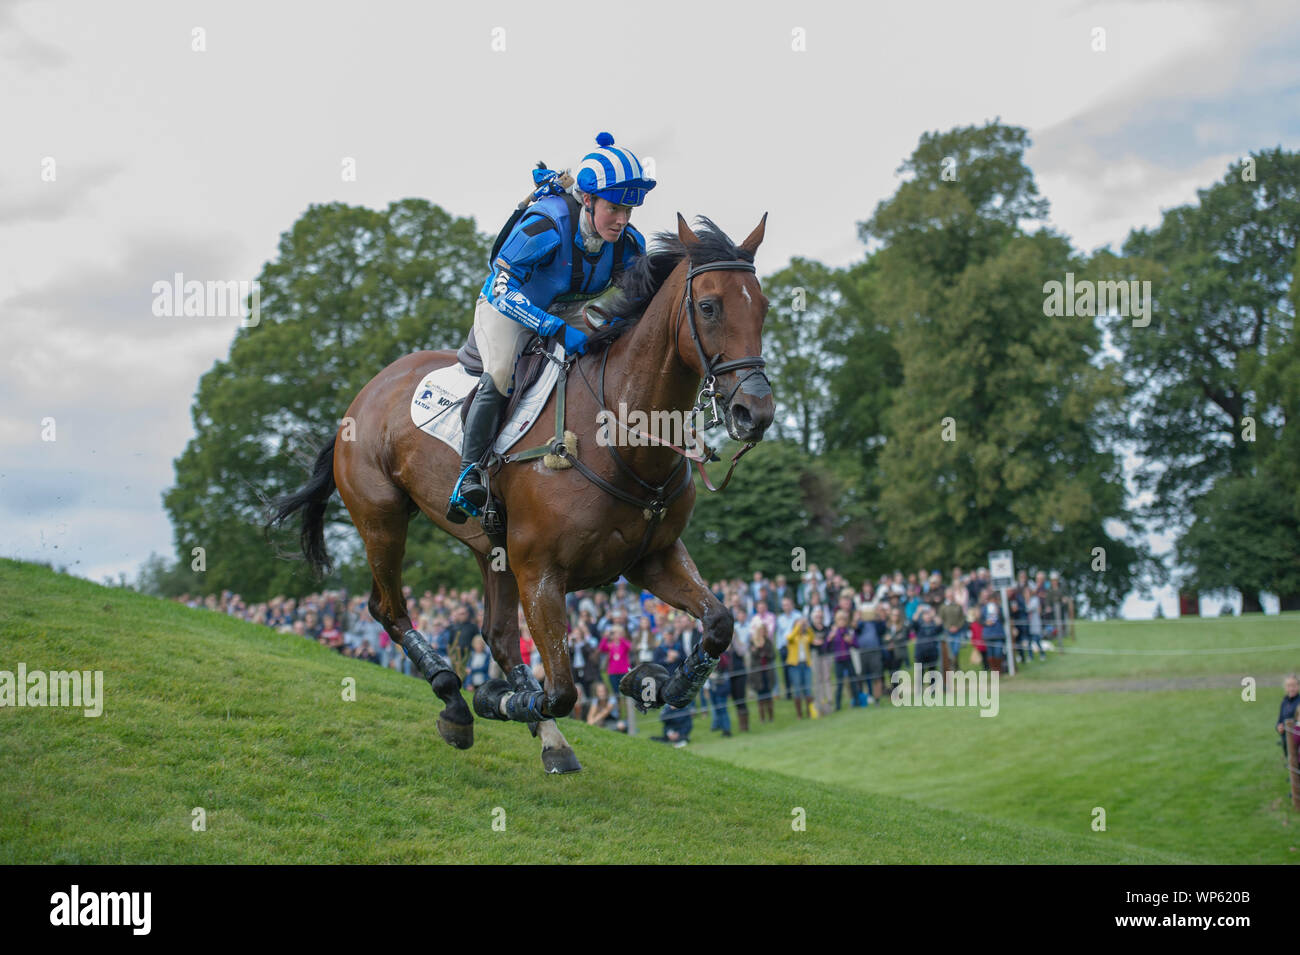 Stamford, UK, Saturday 7th September, 2019.Imogen Murray (BGR) riding Ivar Gooden during the Land Rover Burghley Horse Trials,  Cross Country phase. © Julie Priestley/Alamy Live News Stock Photo